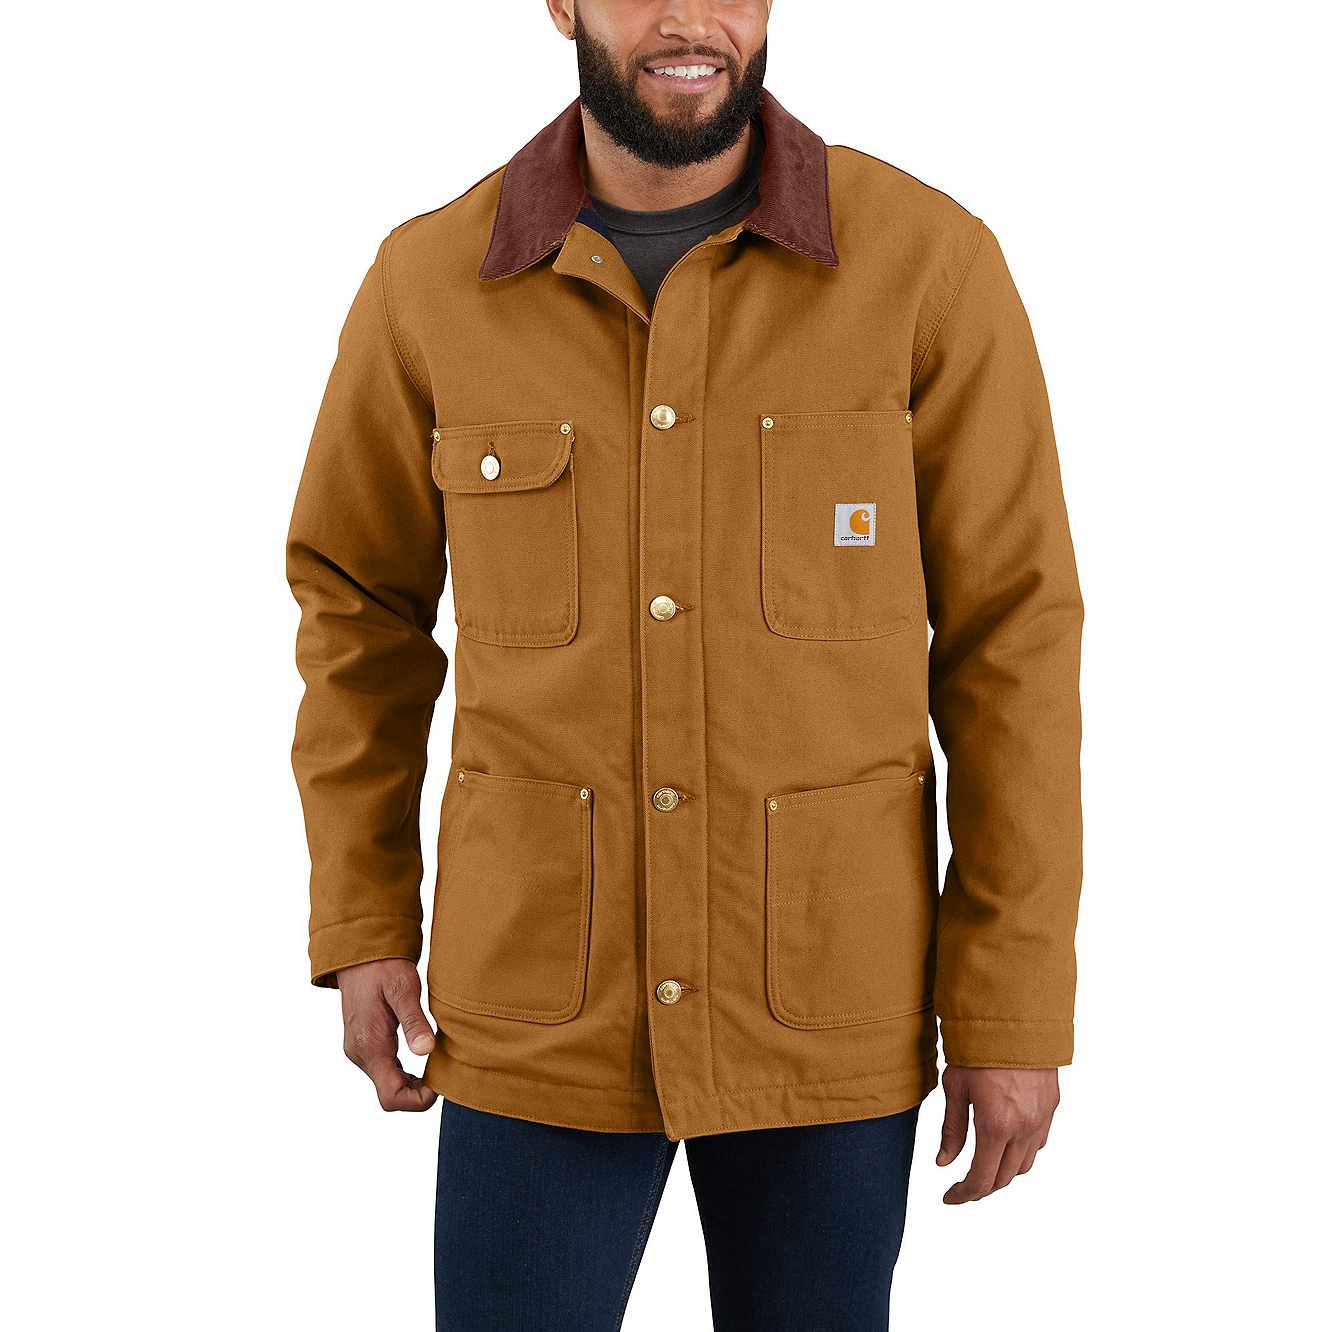 Picture of Chore Coat in Carhartt Brown